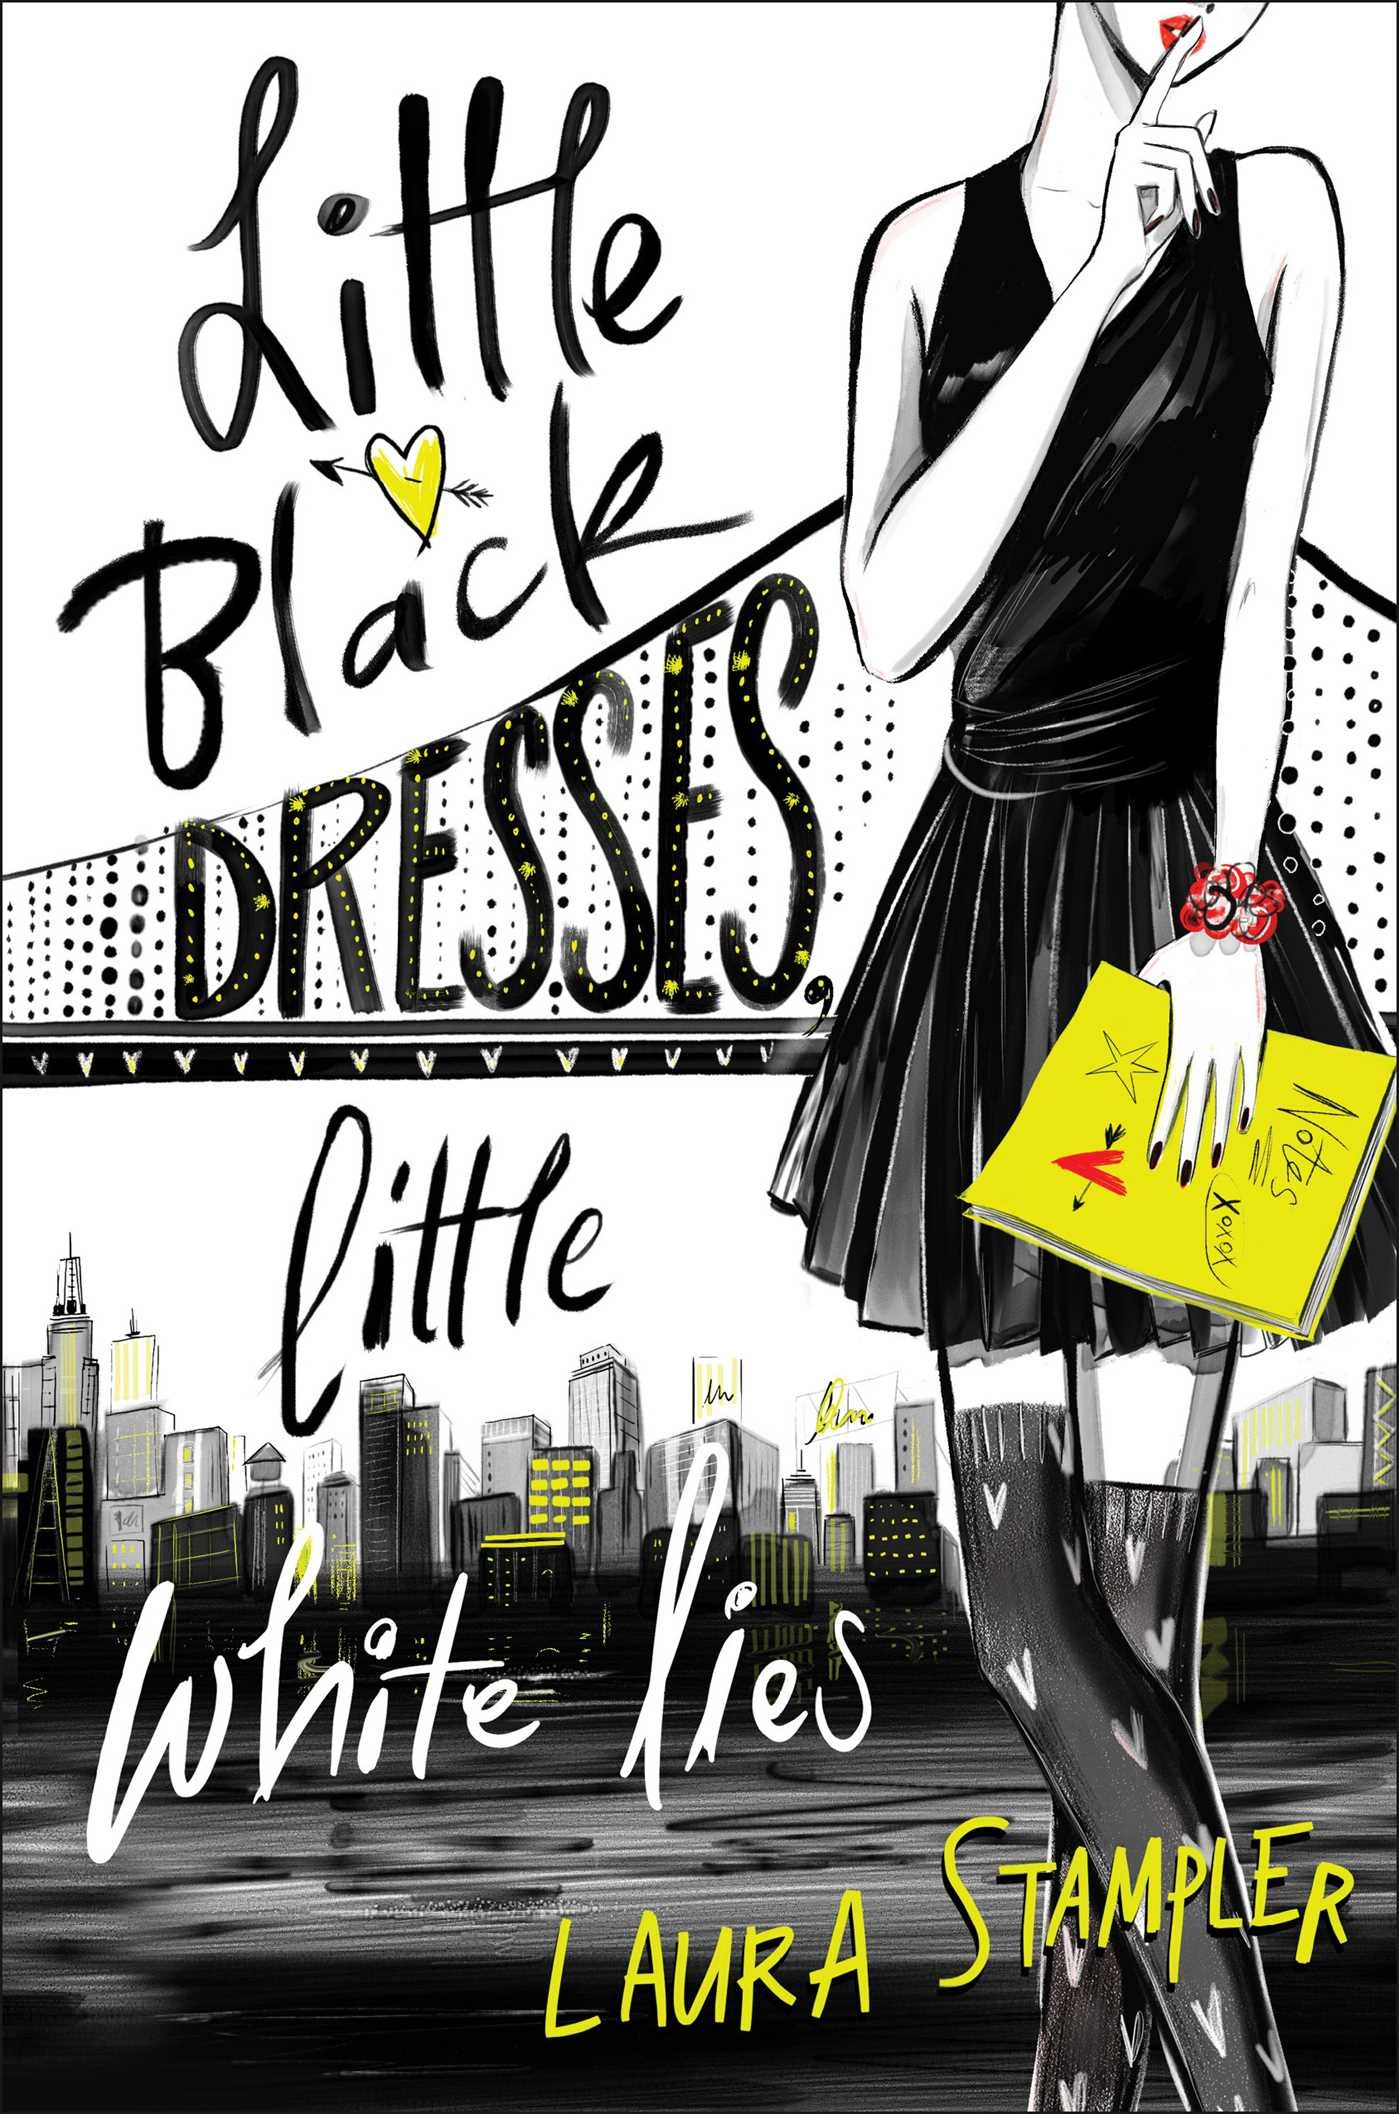 Stampler, LITTLE BLACK DRESSES, LITTLE WHITE LIES, cover.jpg